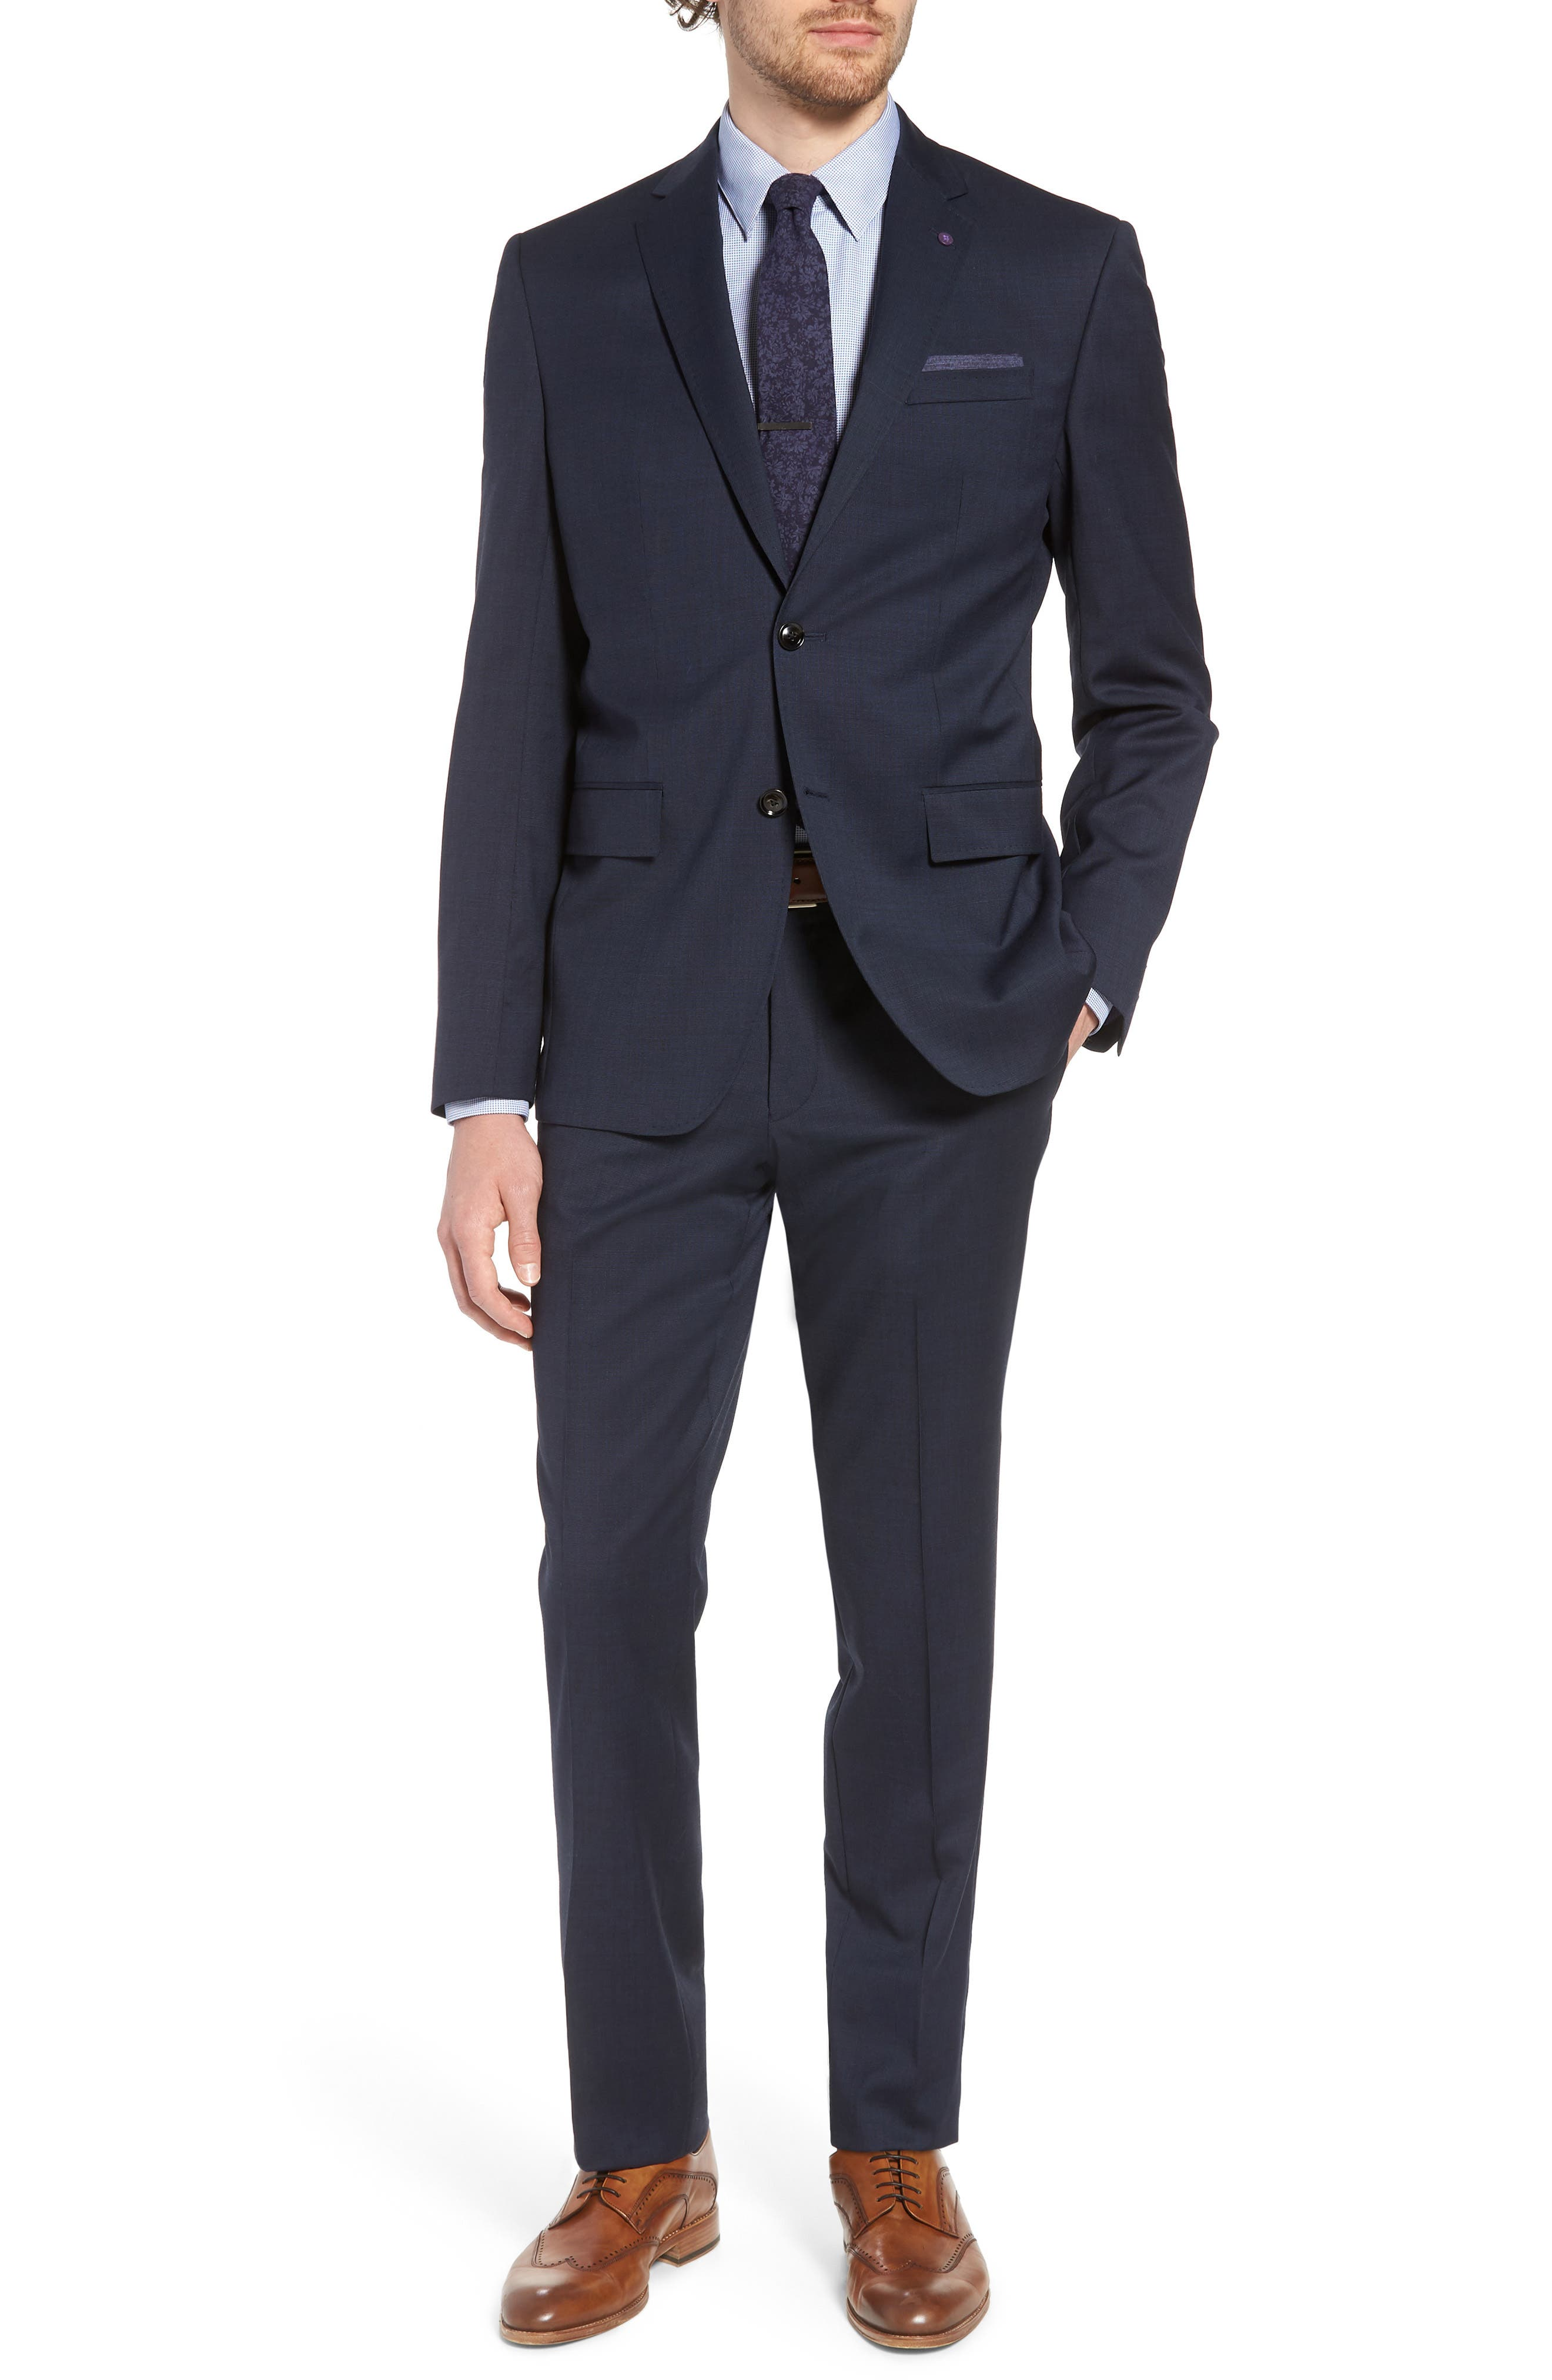 Jay Trim Fit Solid Wool Suit,                             Main thumbnail 1, color,                             Navy